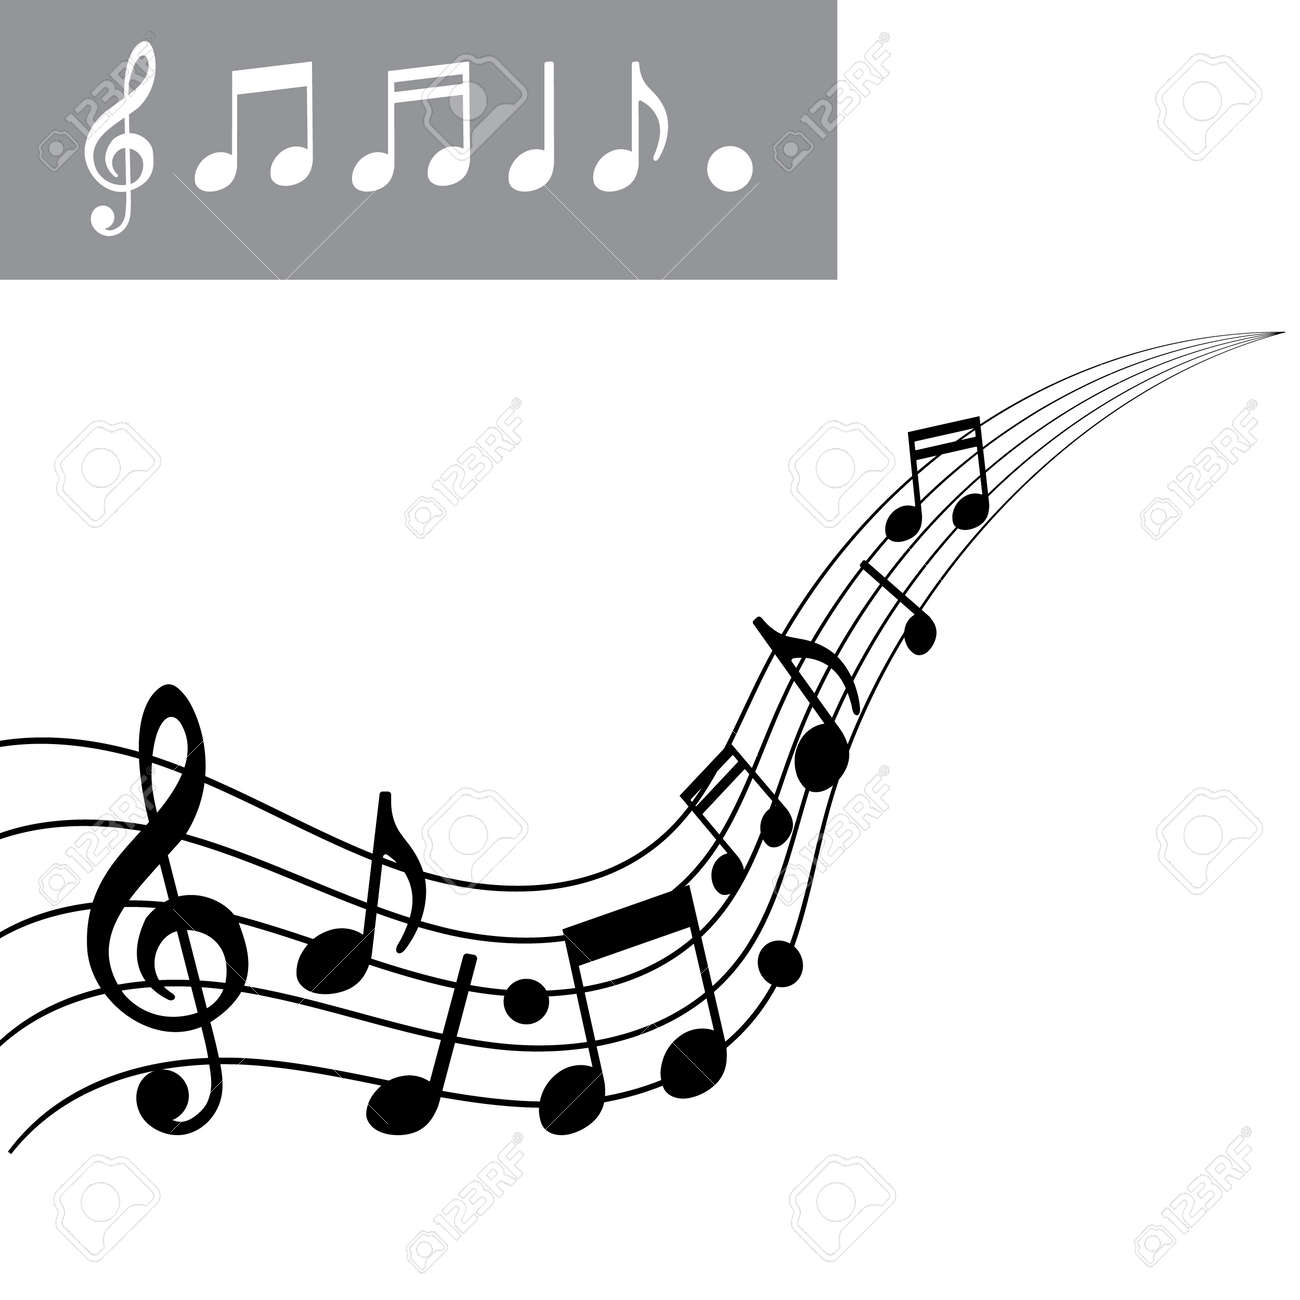 musical notes on scale music note icon set vector illustration rh 123rf com Wind Swirls Clip Art Music Notes